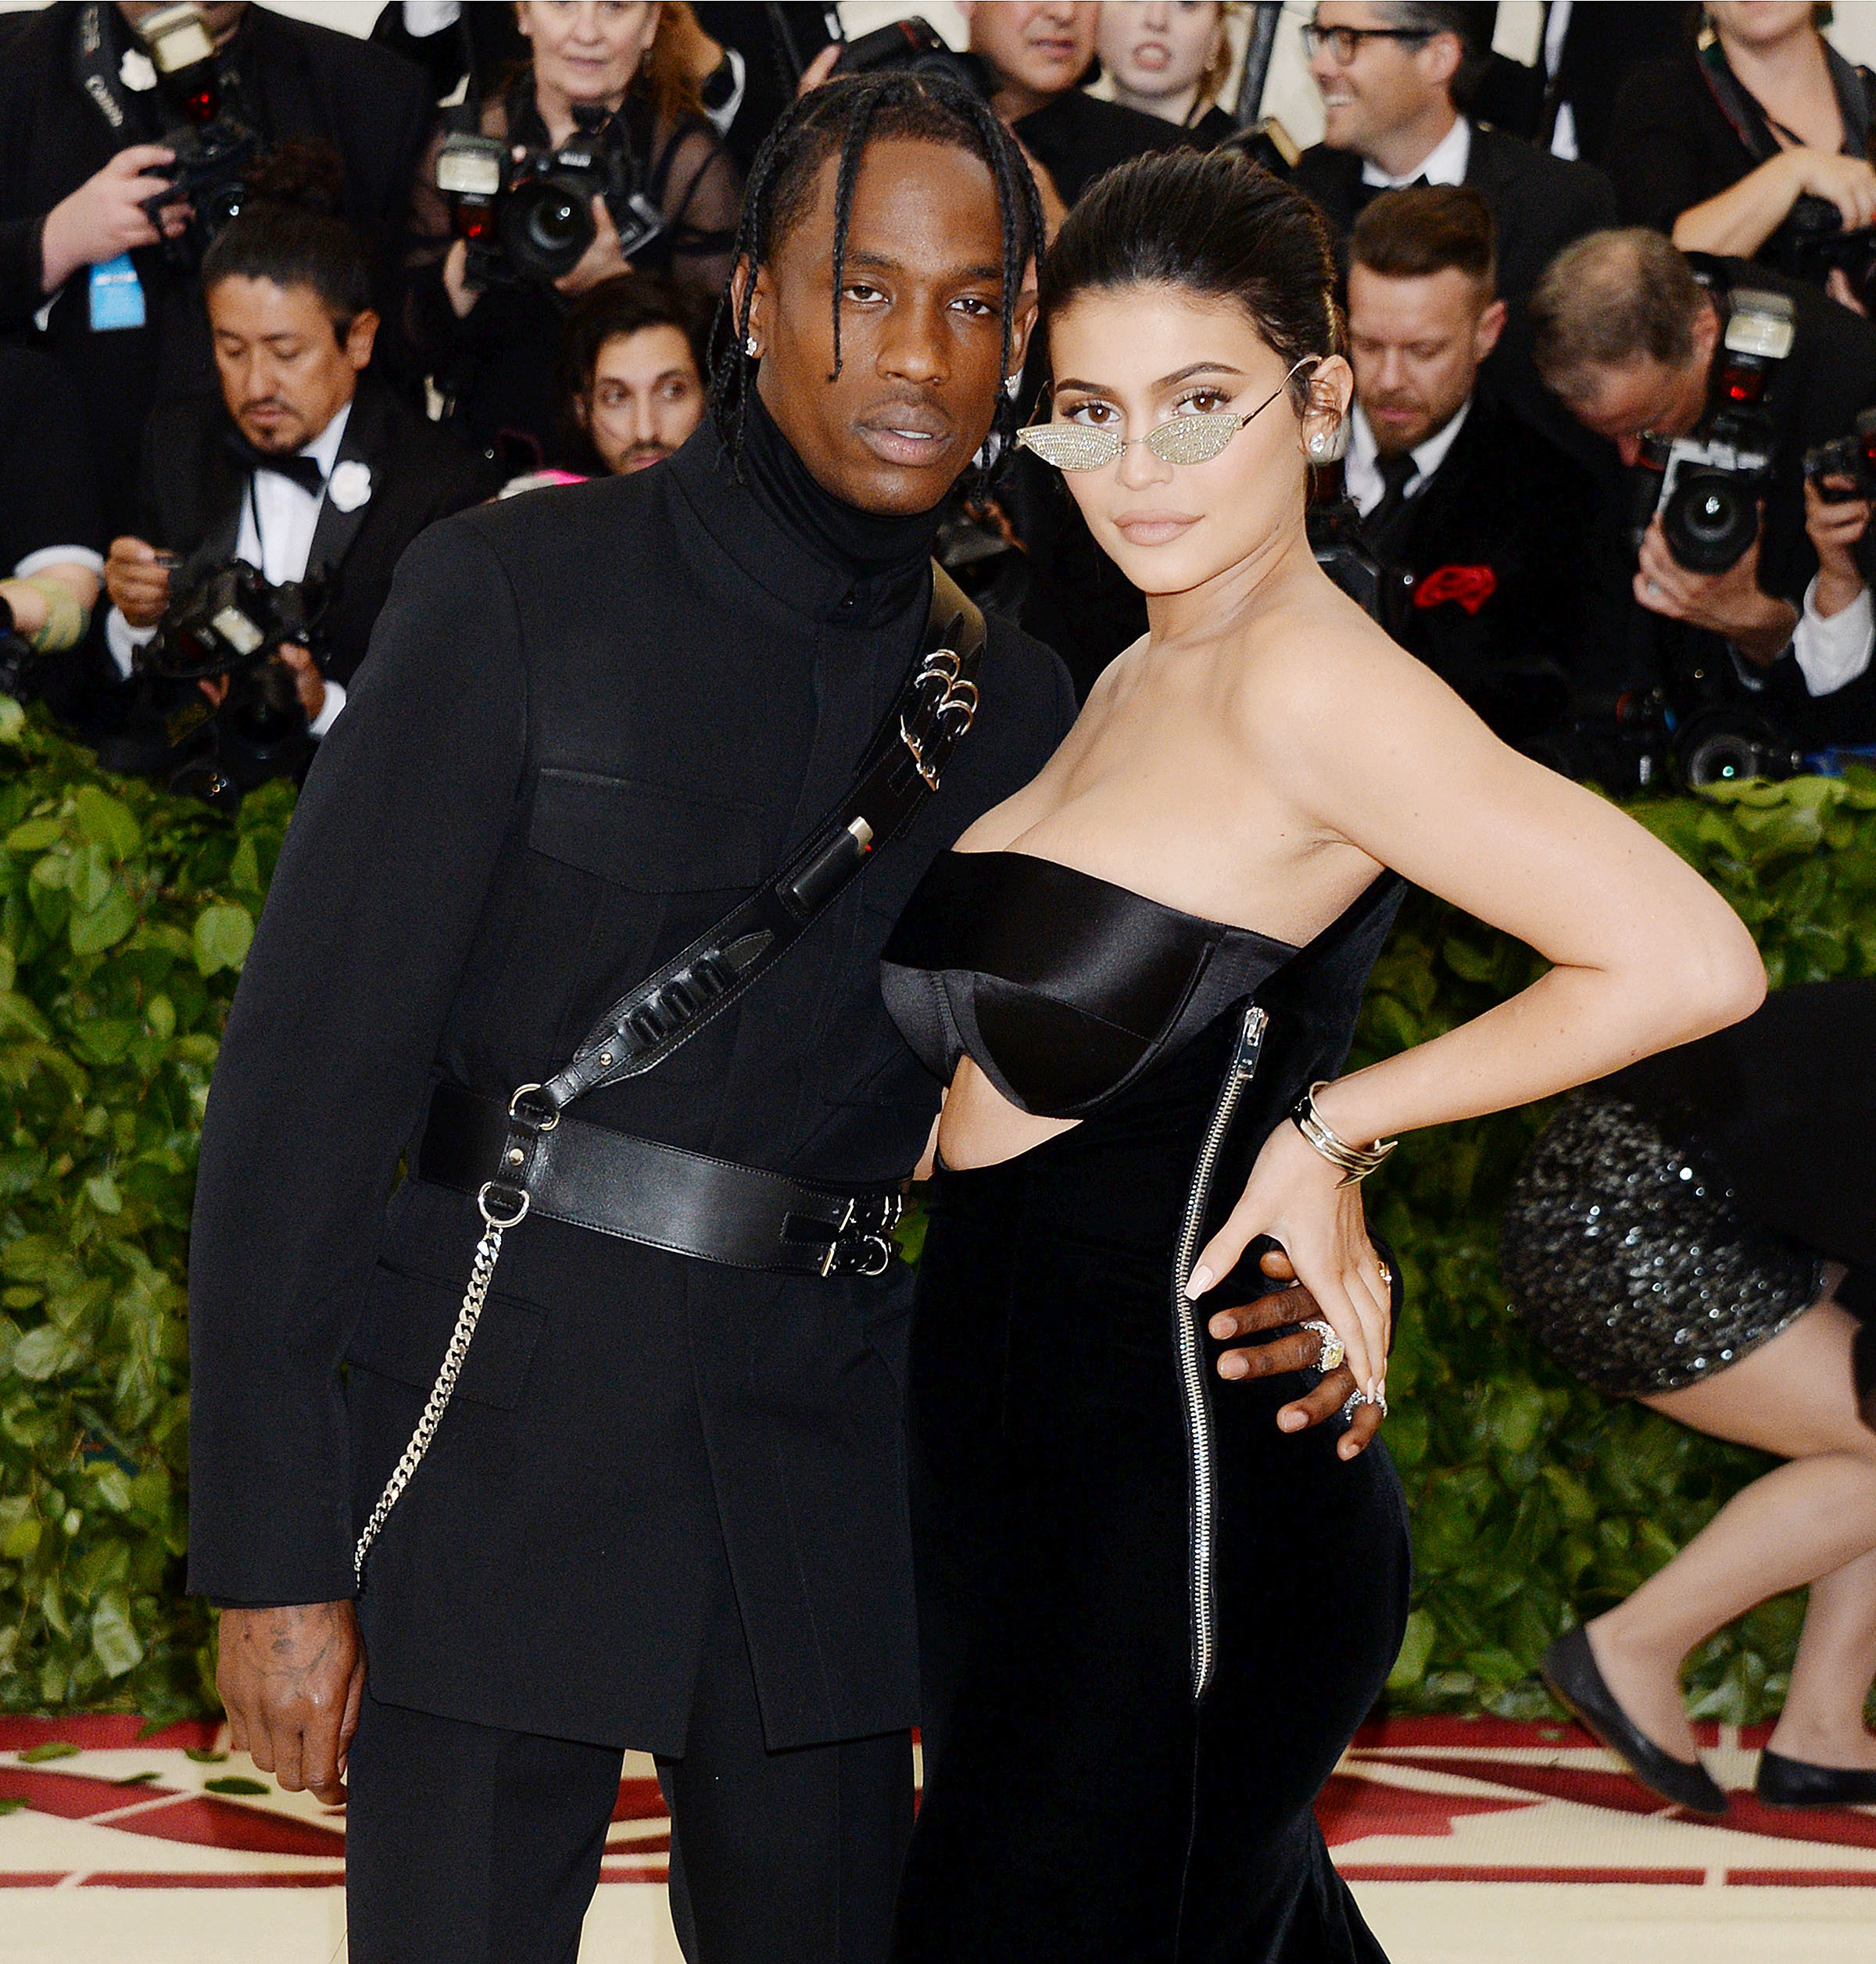 Kylie Jenner and Travis Scott attend the Metropolitan Museum of Art's Costume Institute Benefit celebrating the opening of Heavenly Bodies: Fashion and the Catholic Imagination in New York City on May 7, 2018.